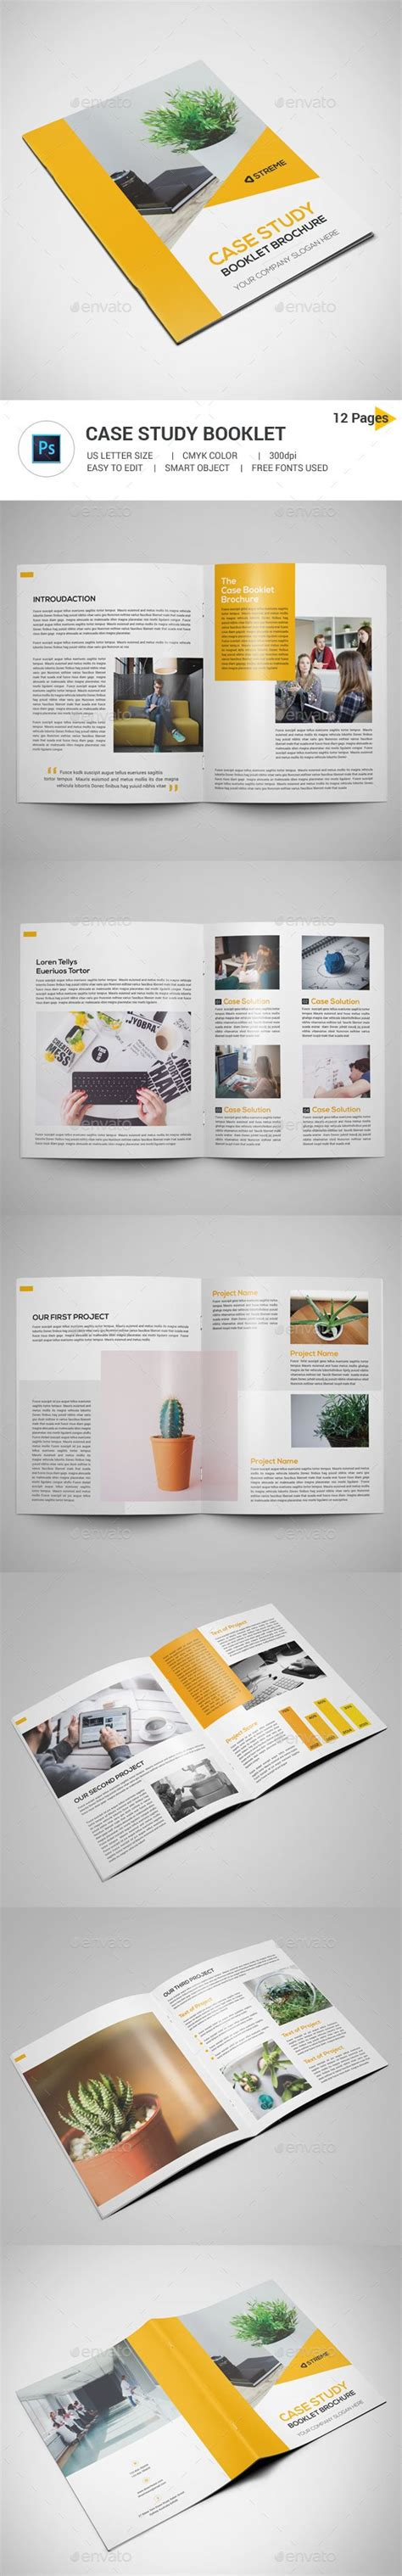 research booklet template 17 best images about study inspiration on